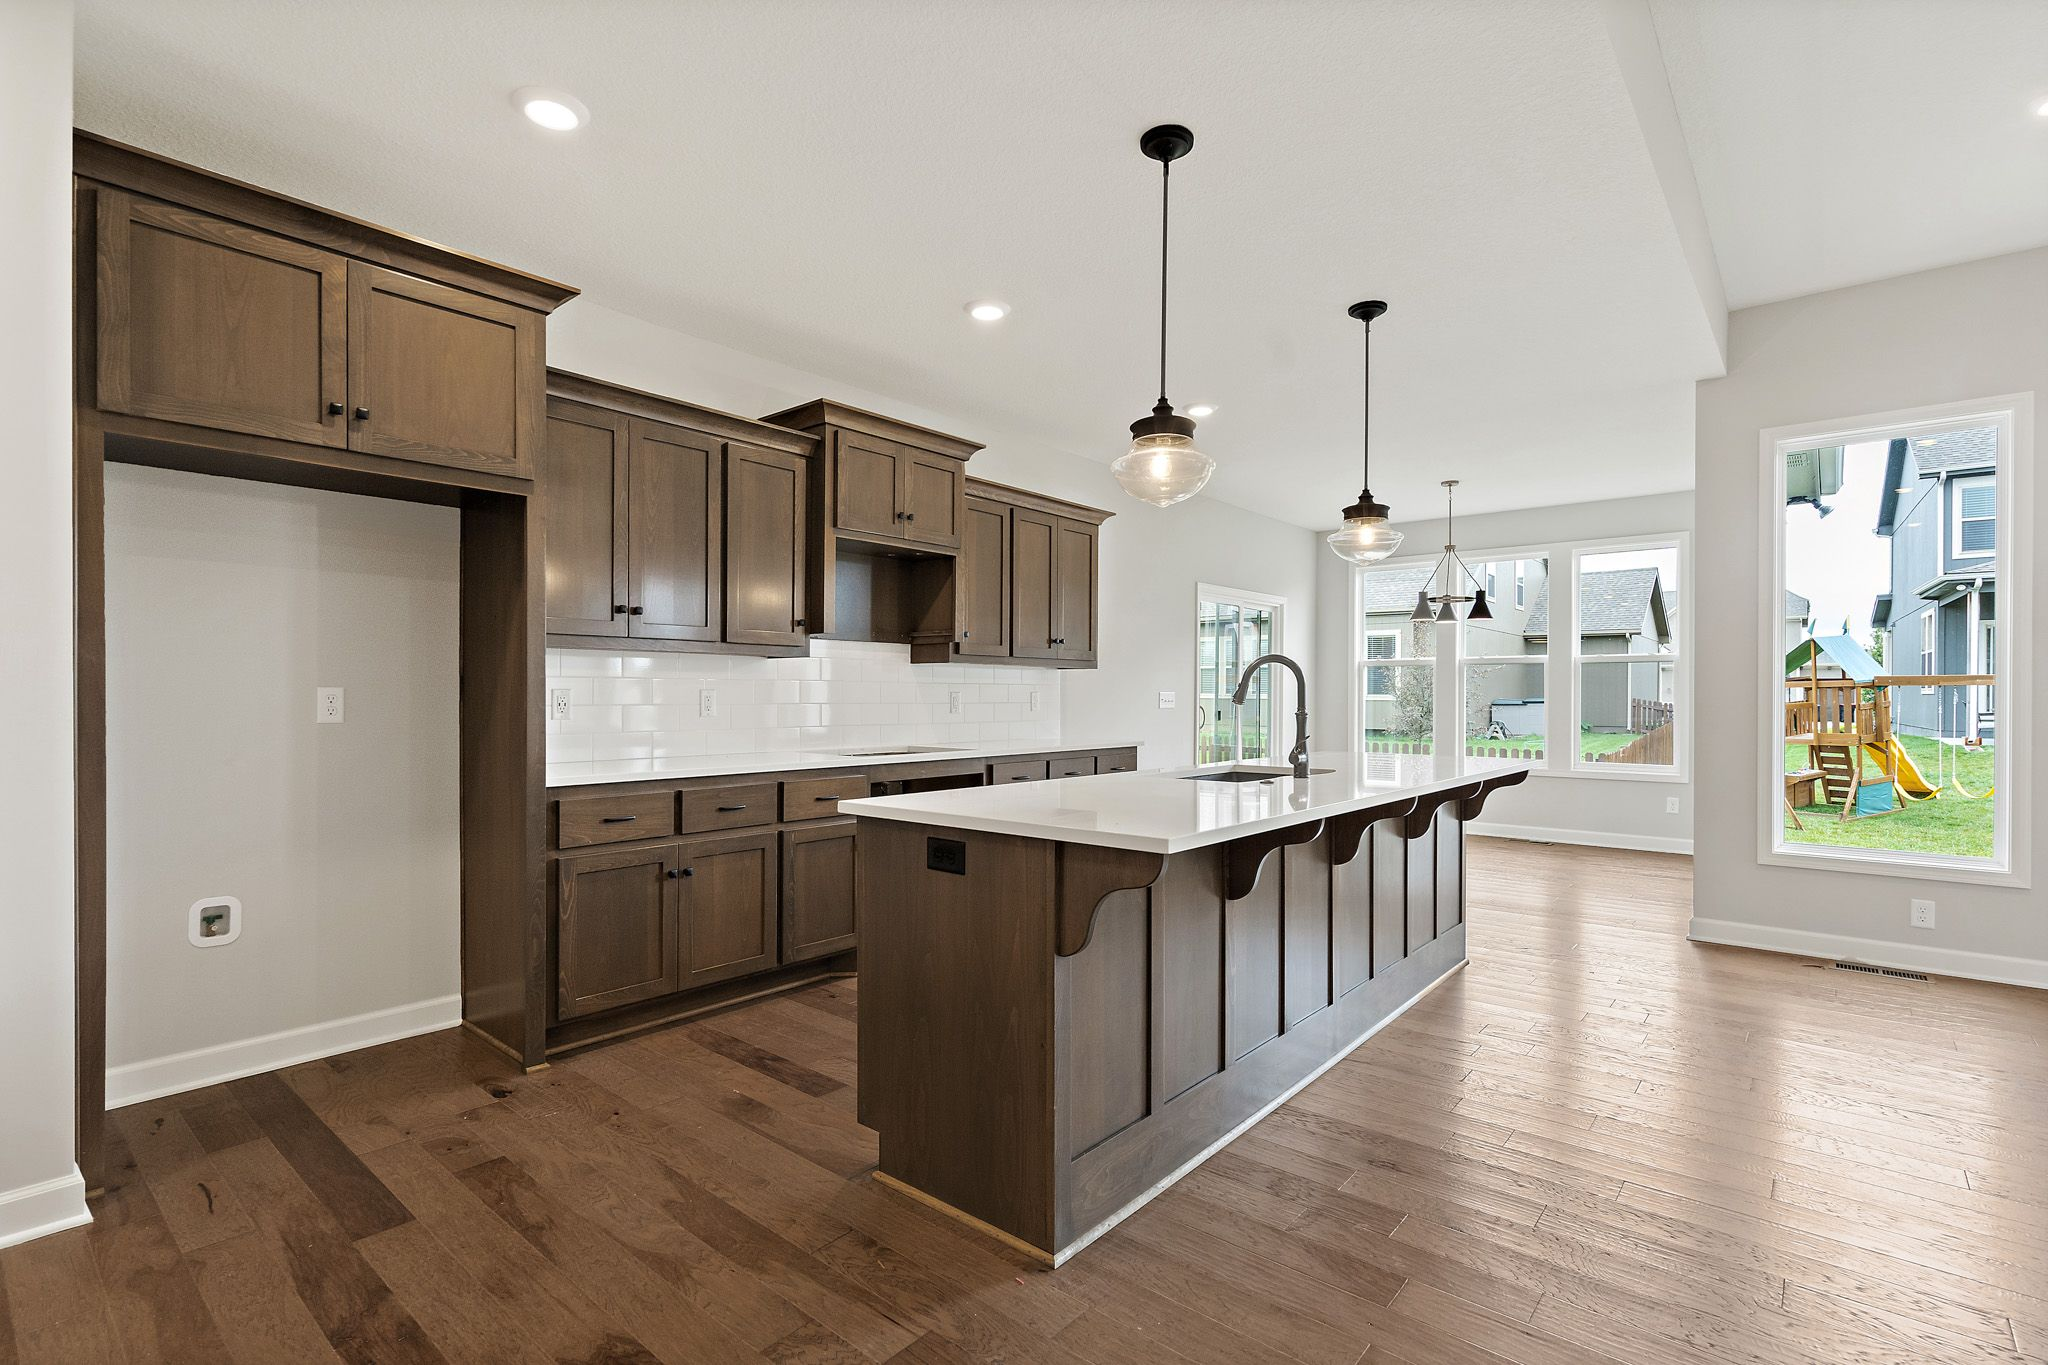 Kitchen featured in the Linden - IA By Summit Homes in Des Moines, IA